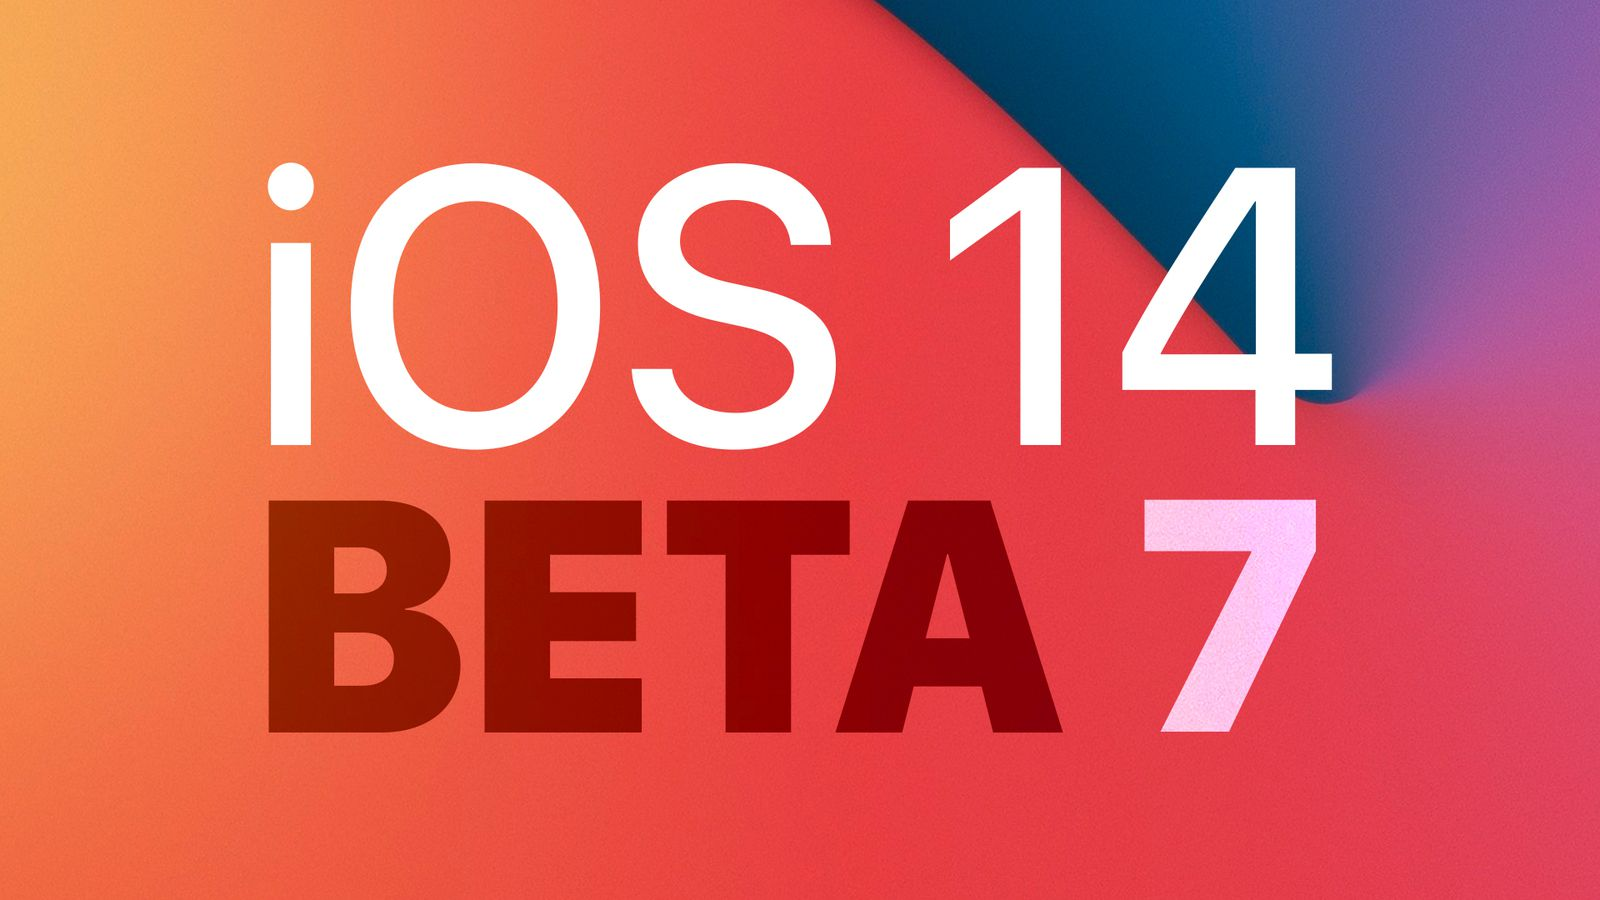 Apple Releases Seventh Betas Of Ios 14 And Ipados 14 To Developers Update Public Beta Available Macrumors